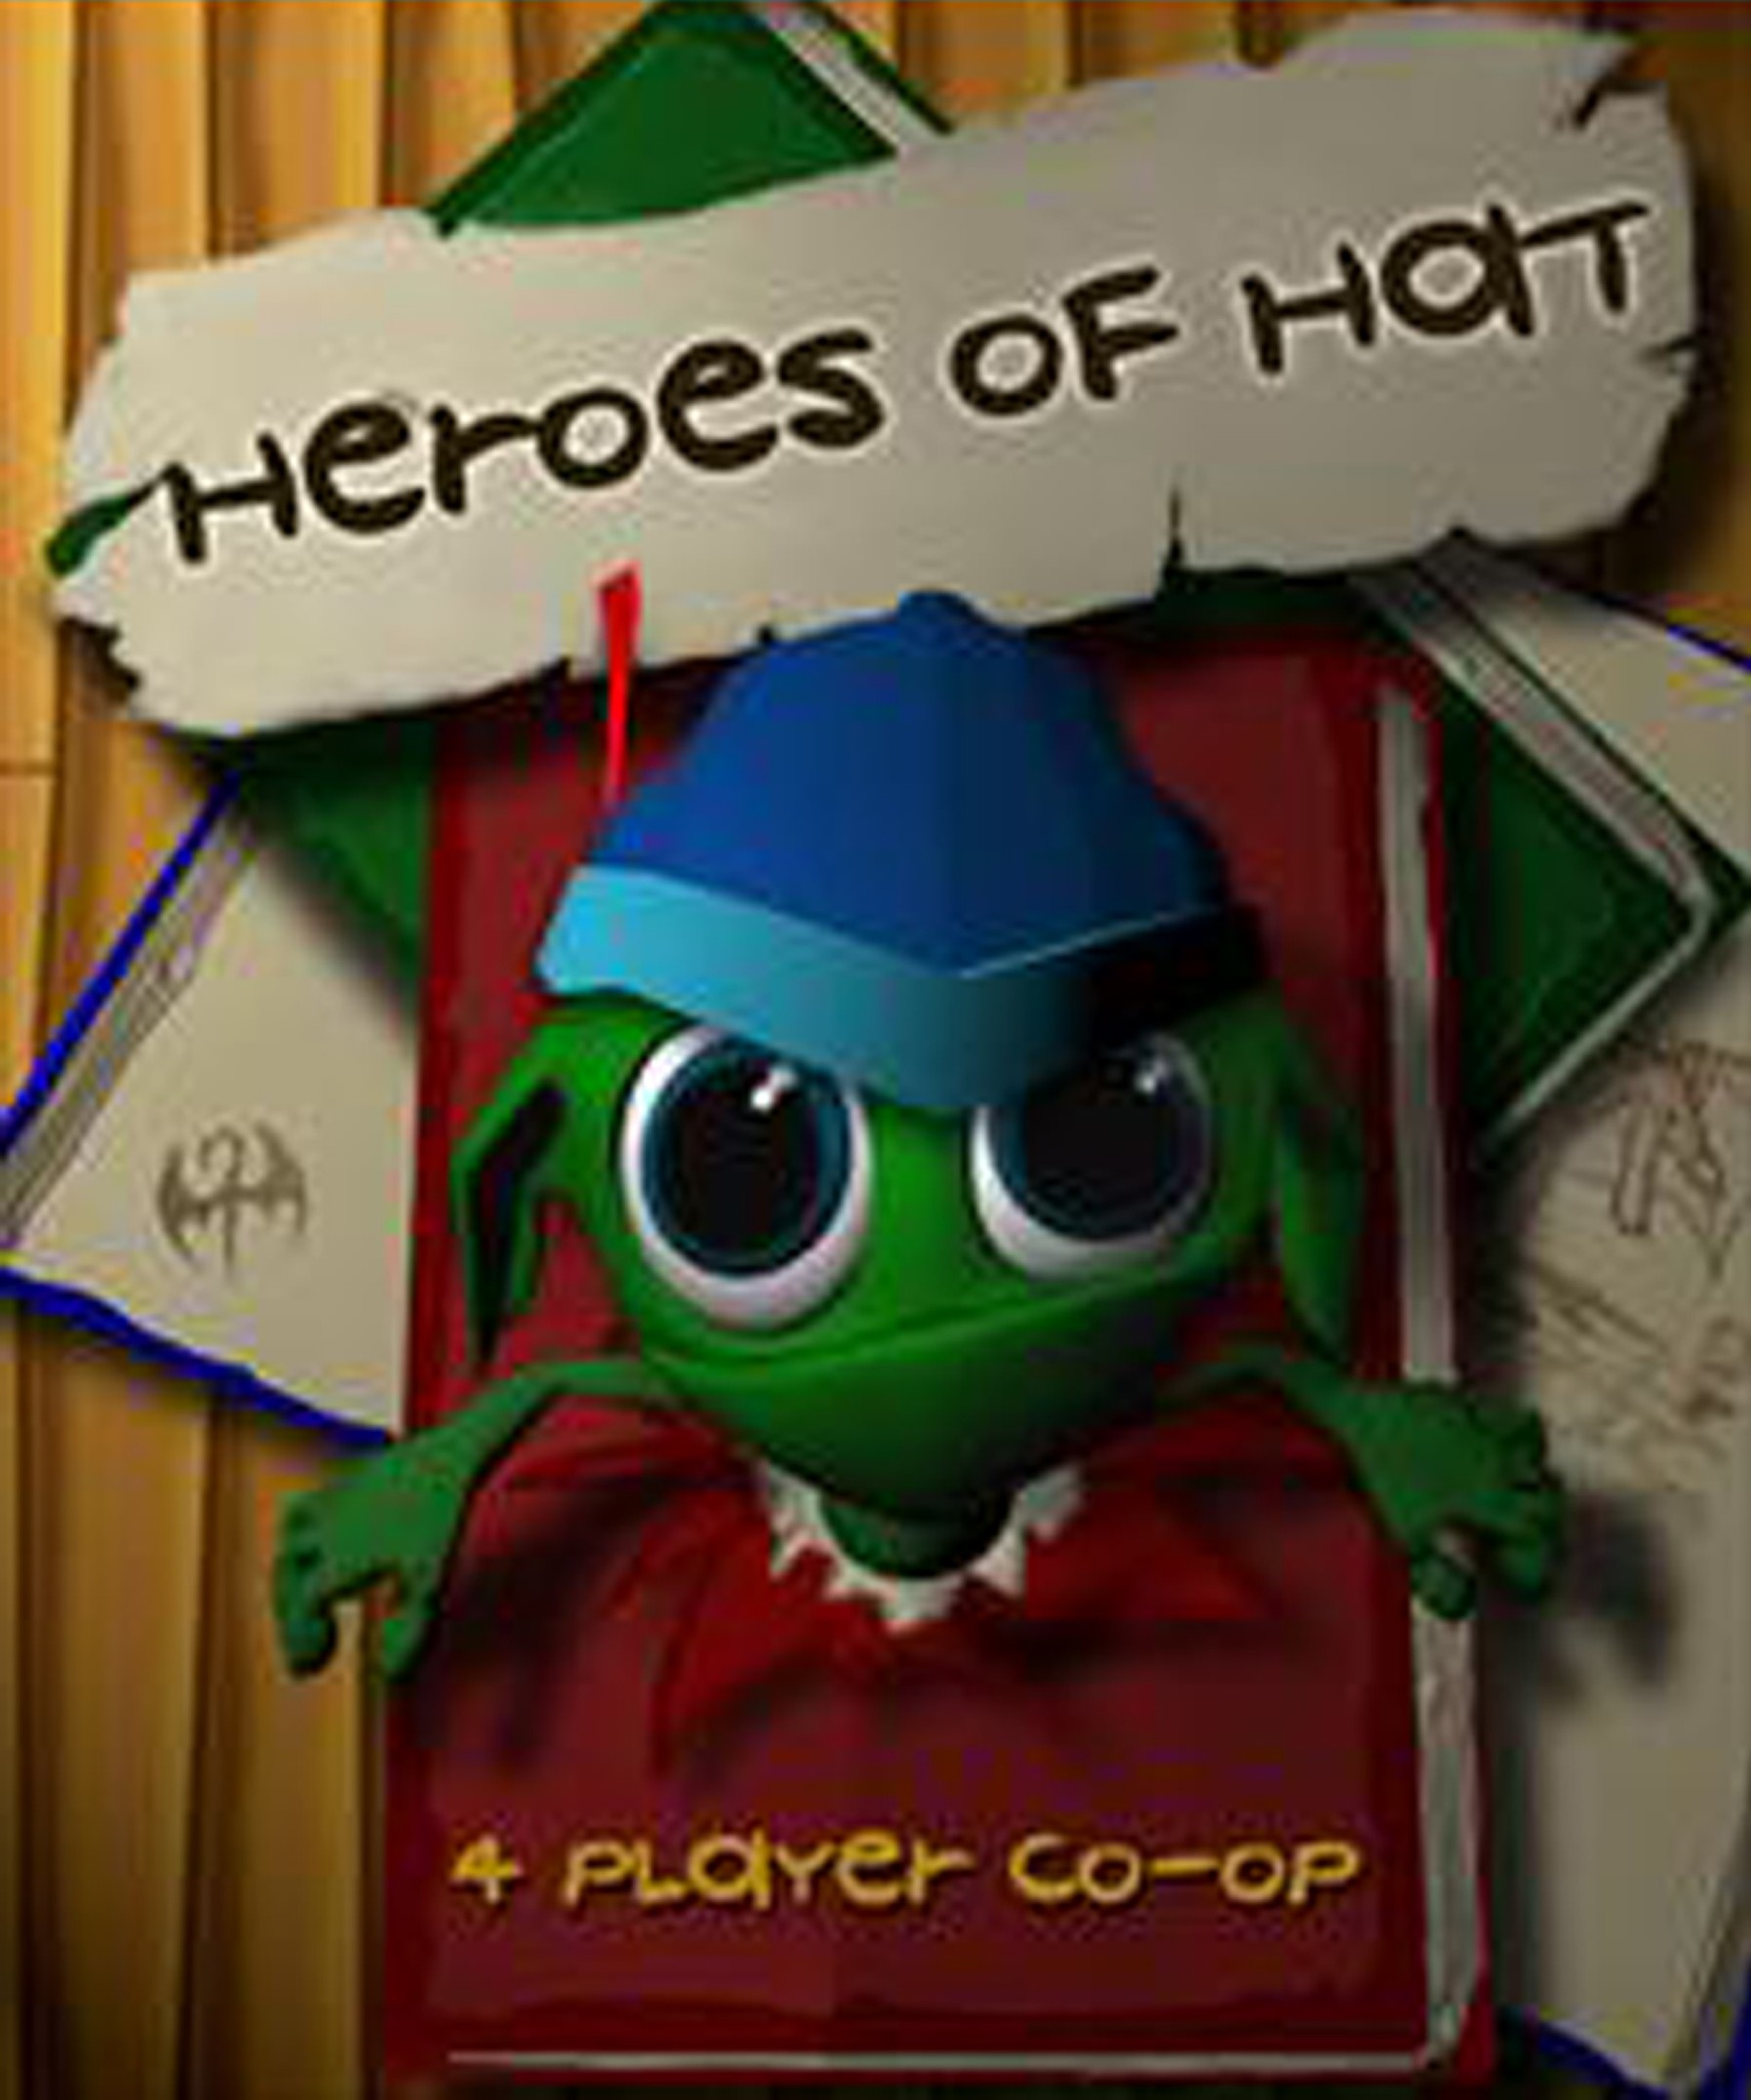 """""""Heroes of Hat,"""" the first game produced by students in the EAE program at the University of Utah."""